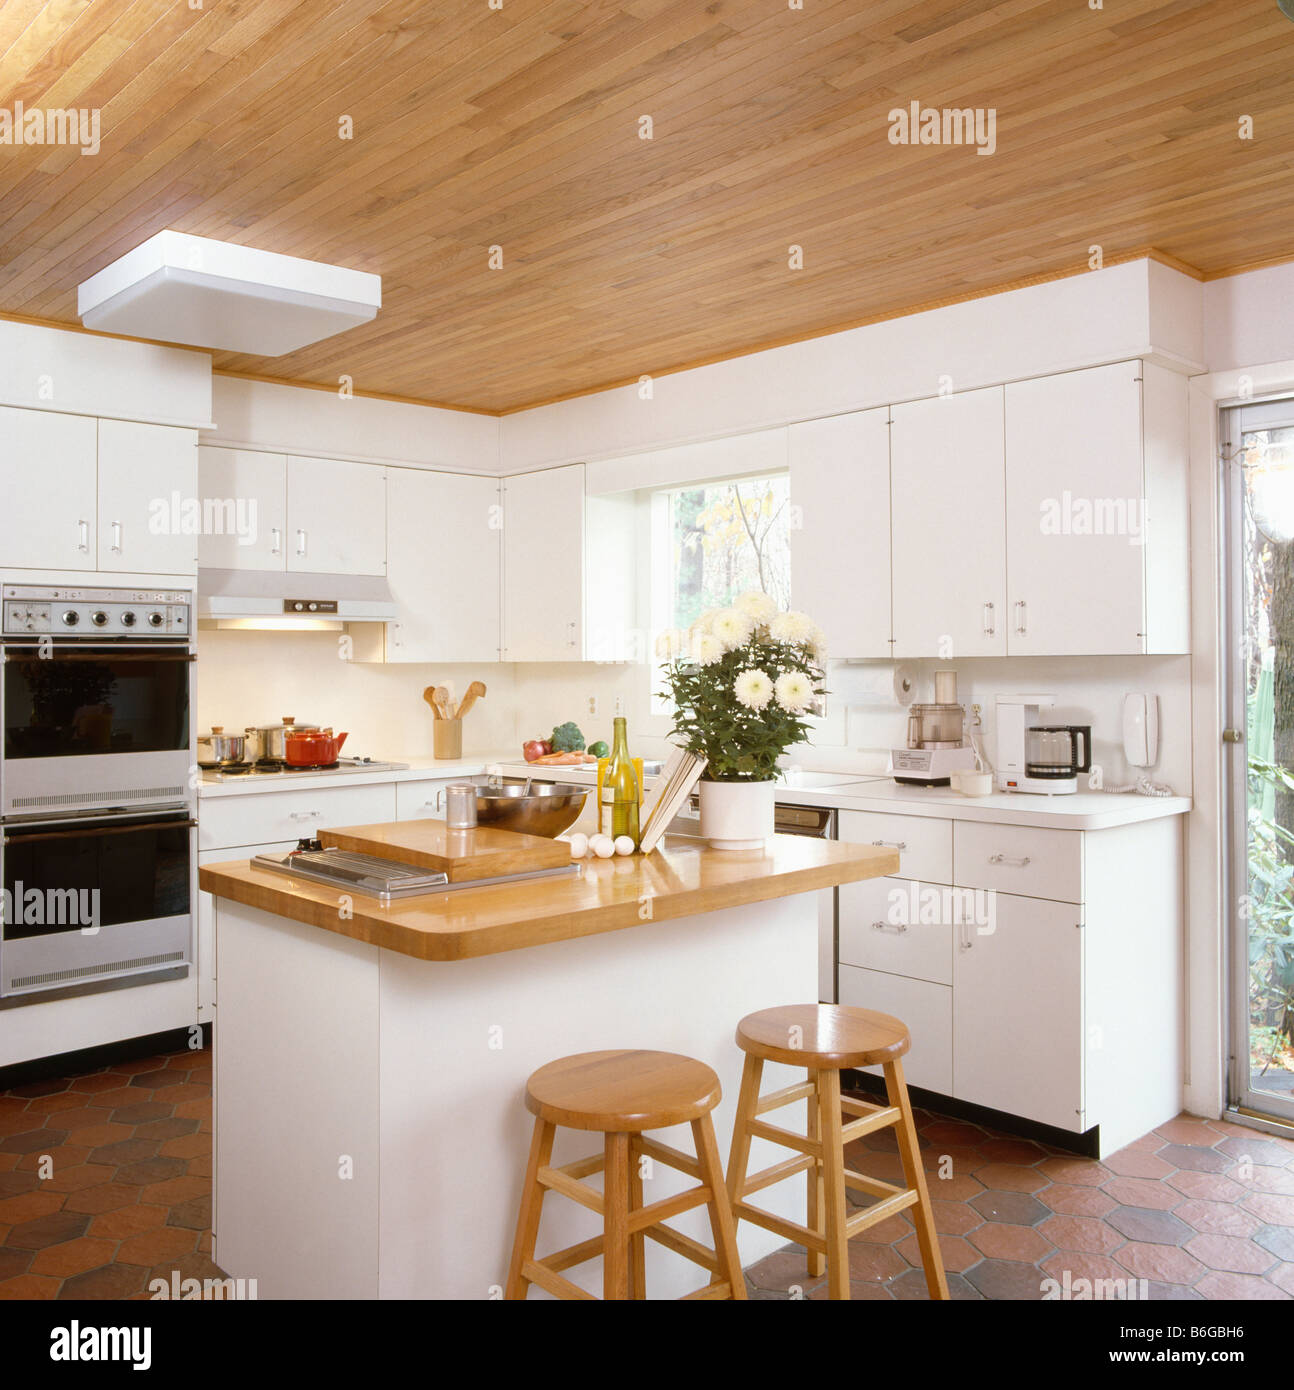 White Kitchen Units With Oak Worktop: Wooden Stools At Island Unit With Wooden Worktop In Modern